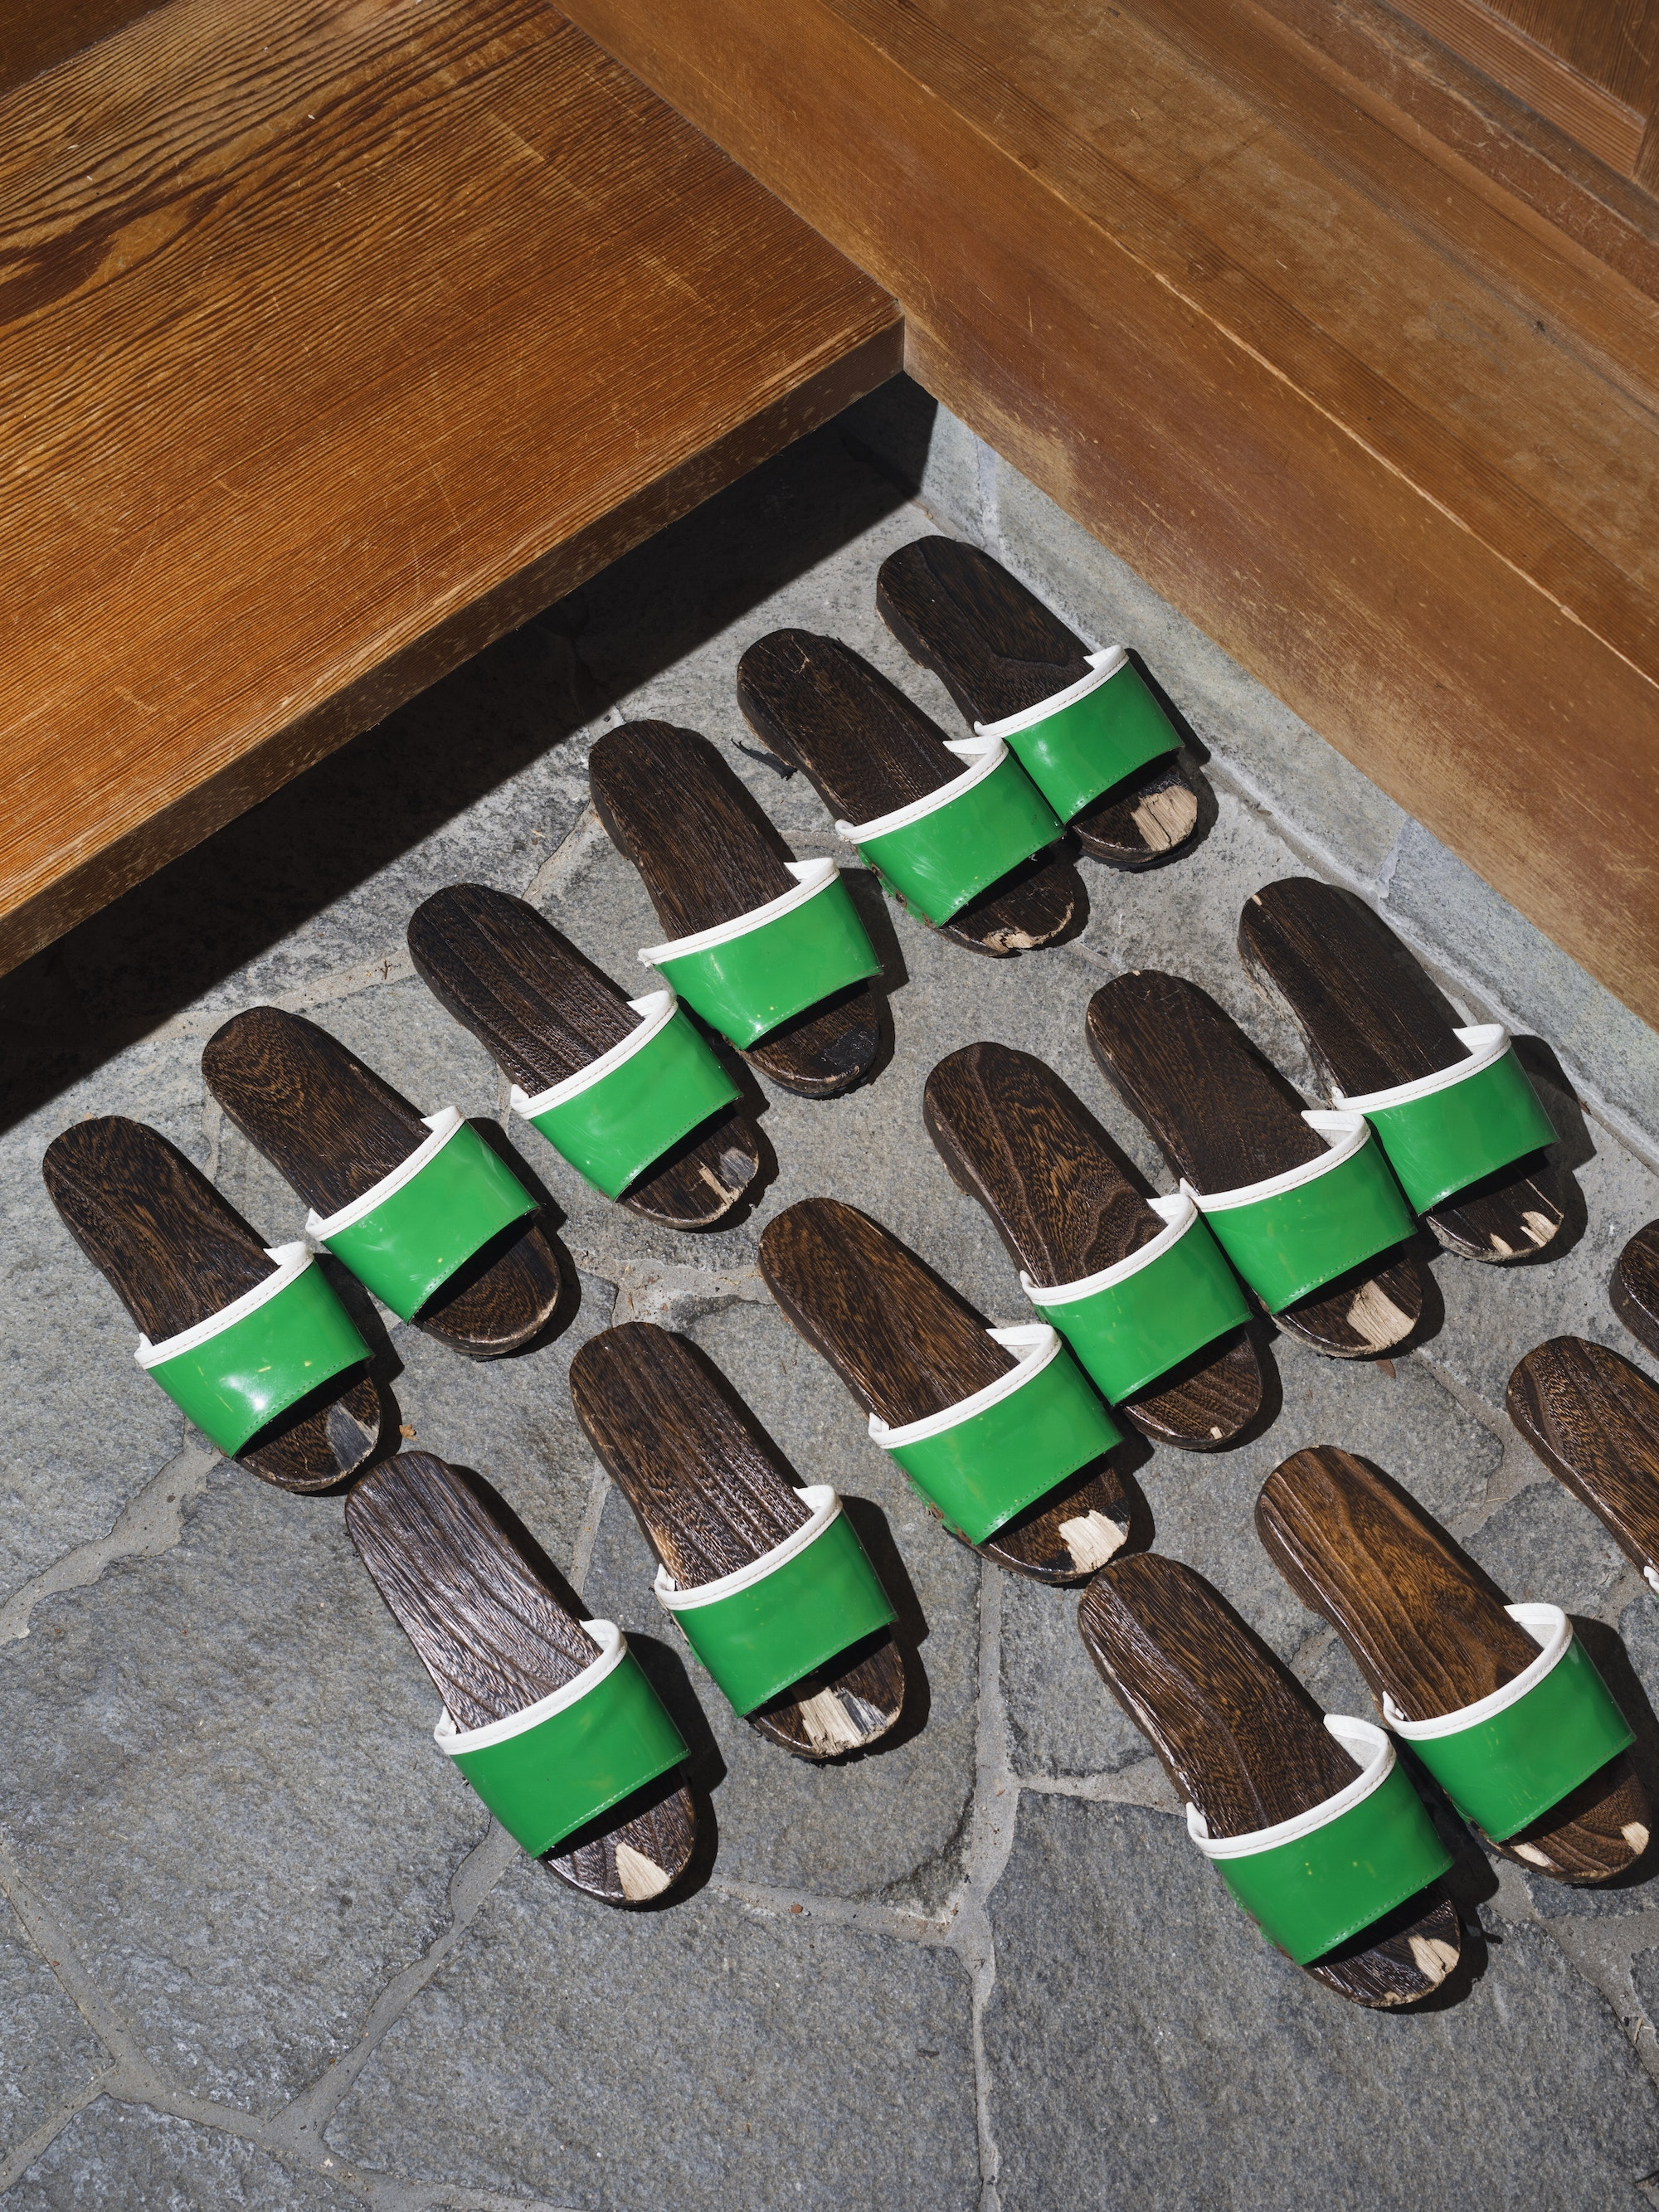 Slippers for guests entering a building